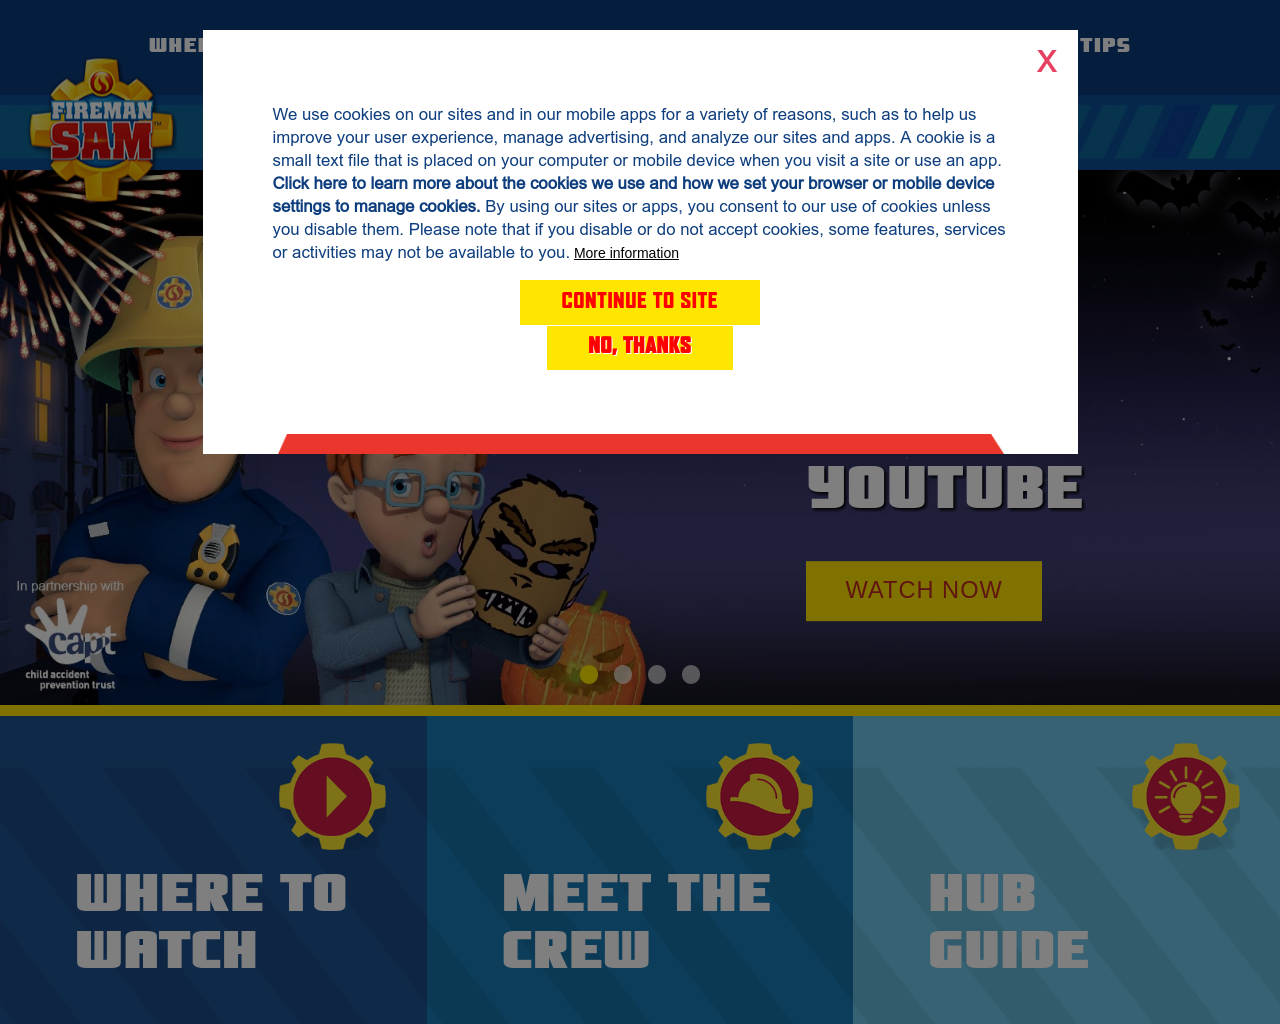 Check out Fireman Sam's Activities